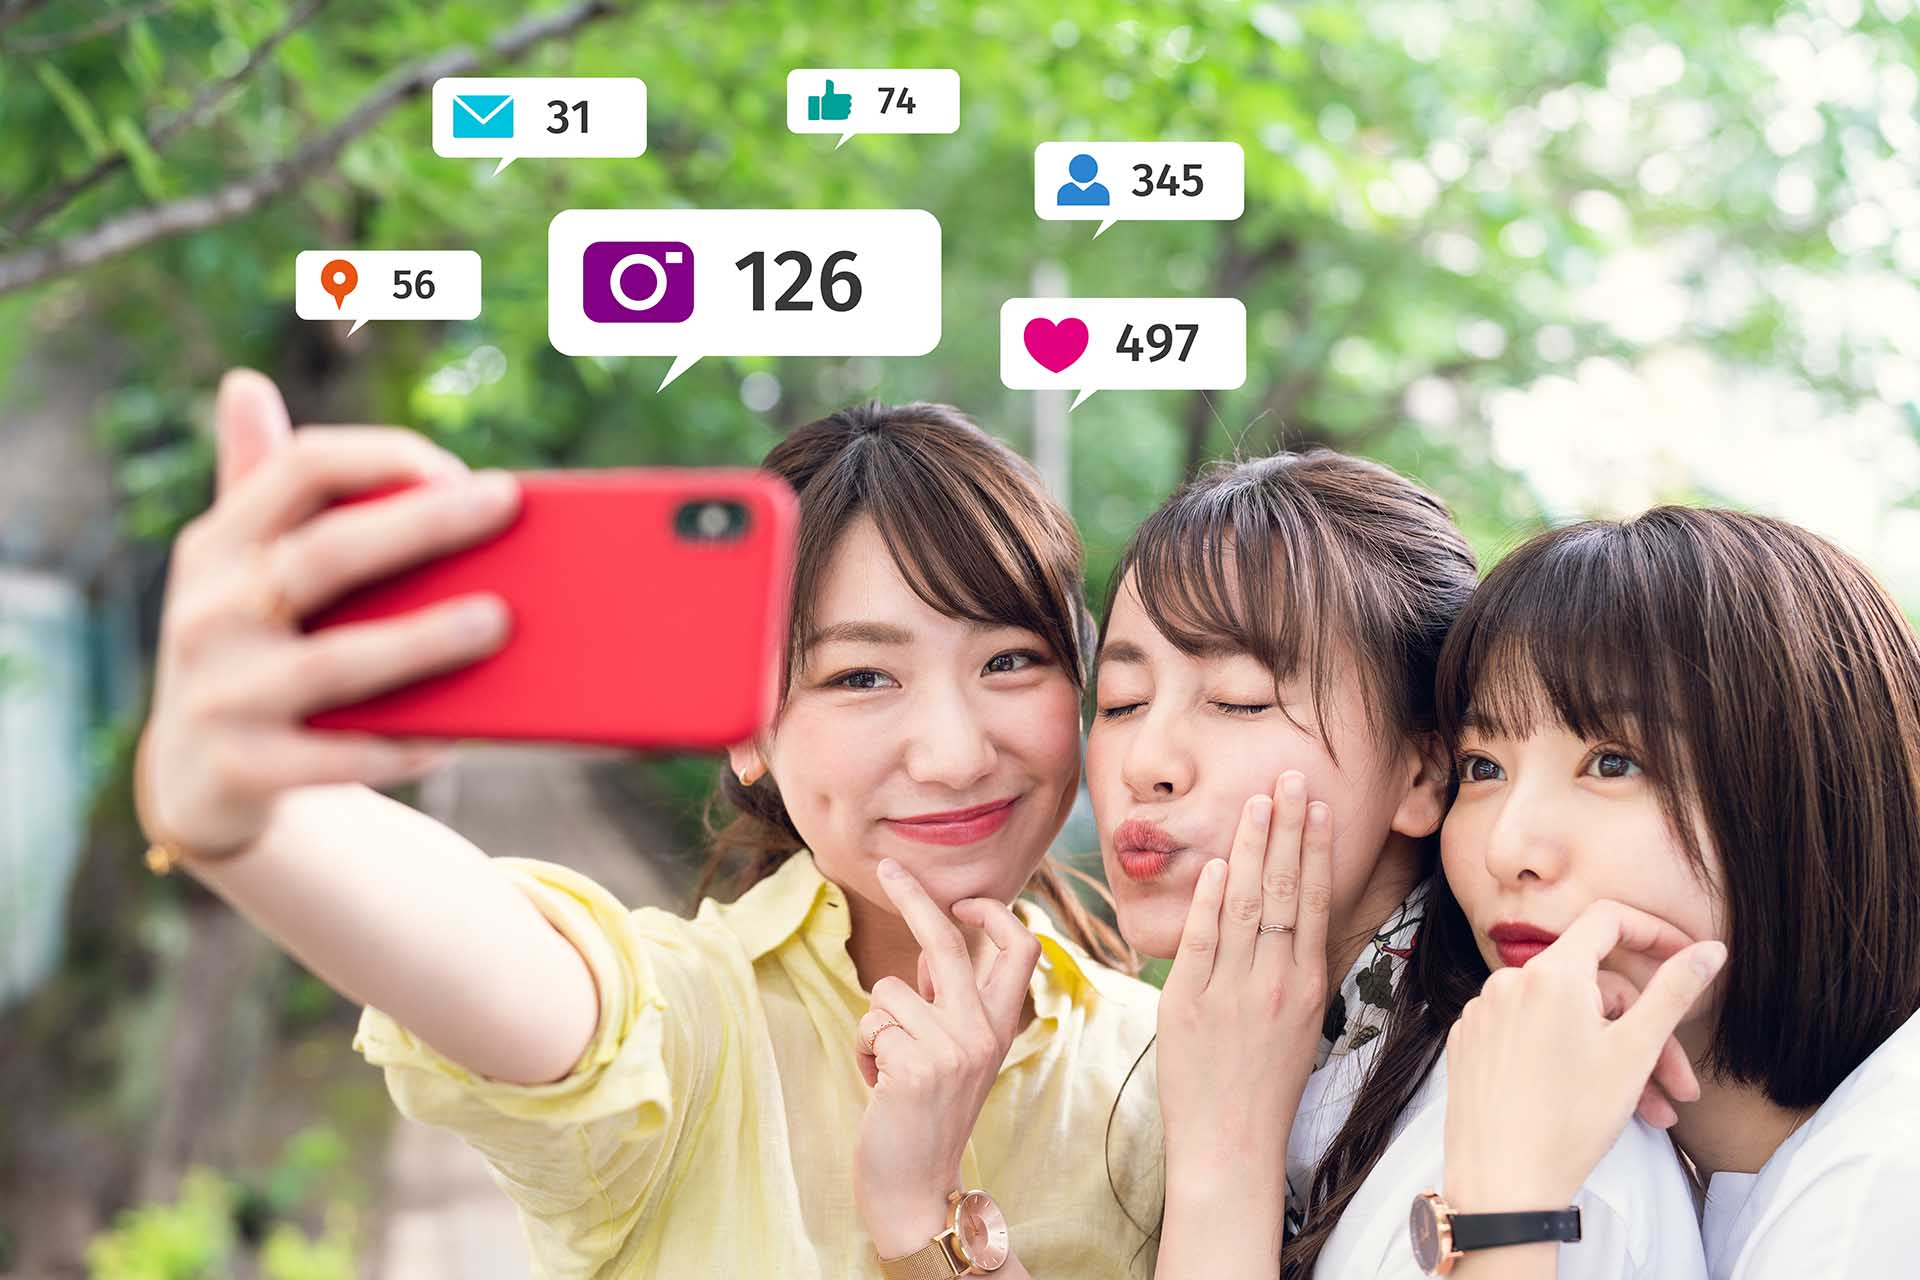 YouTube, Instagram, Twitter And Facebook Usage In Japan - Digital Marketing For Asia